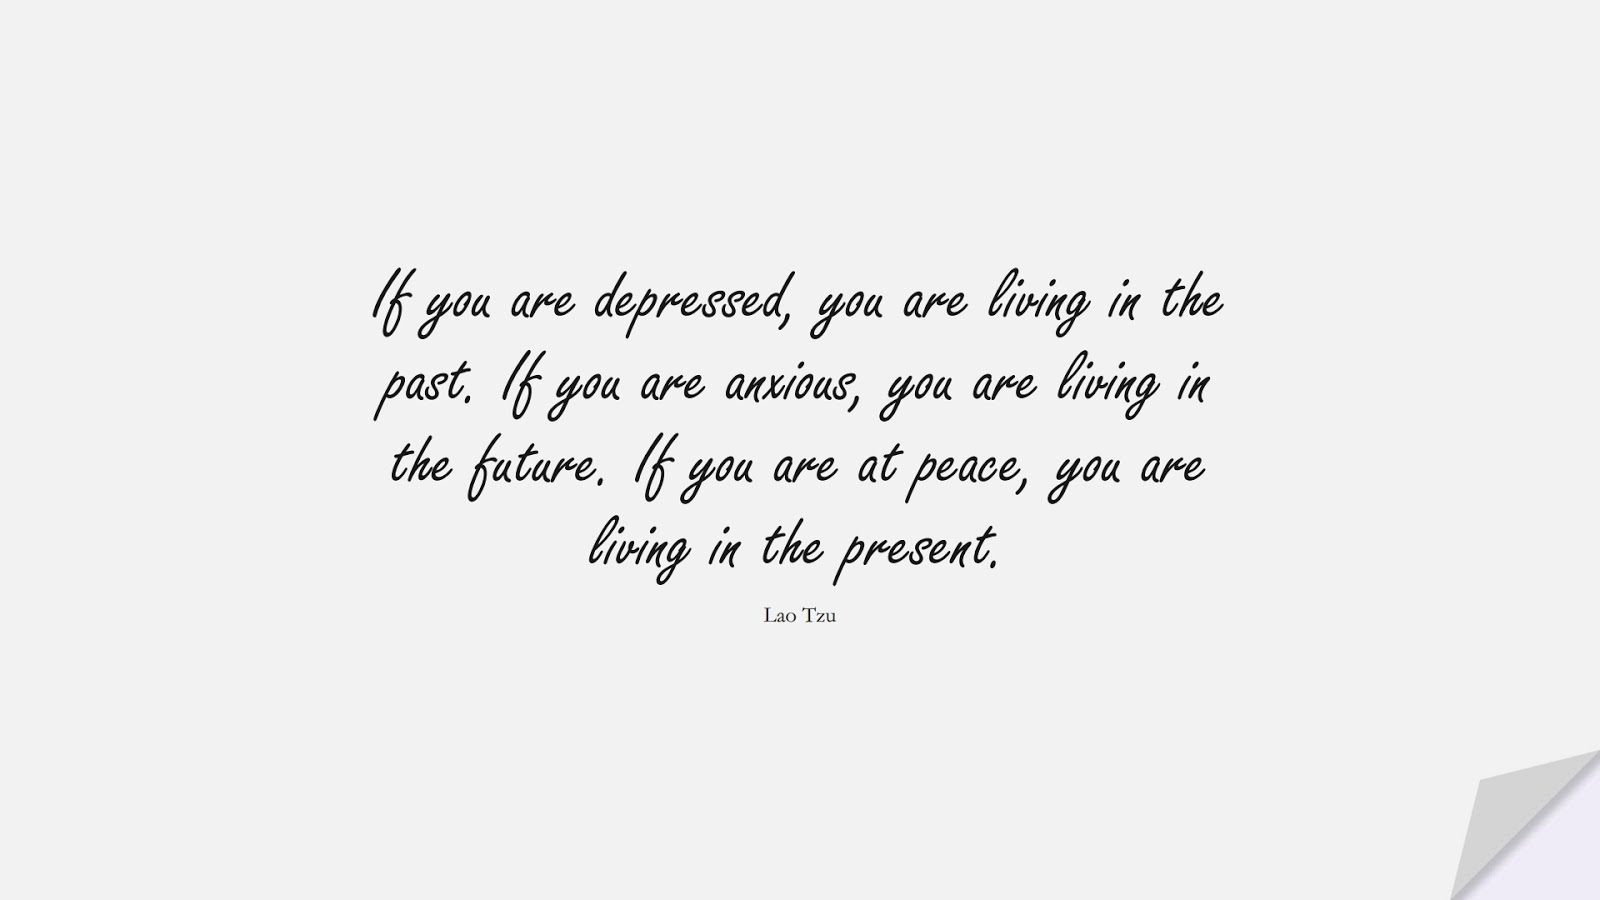 If you are depressed, you are living in the past. If you are anxious, you are living in the future. If you are at peace, you are living in the present. (Lao Tzu);  #ShortQuotes